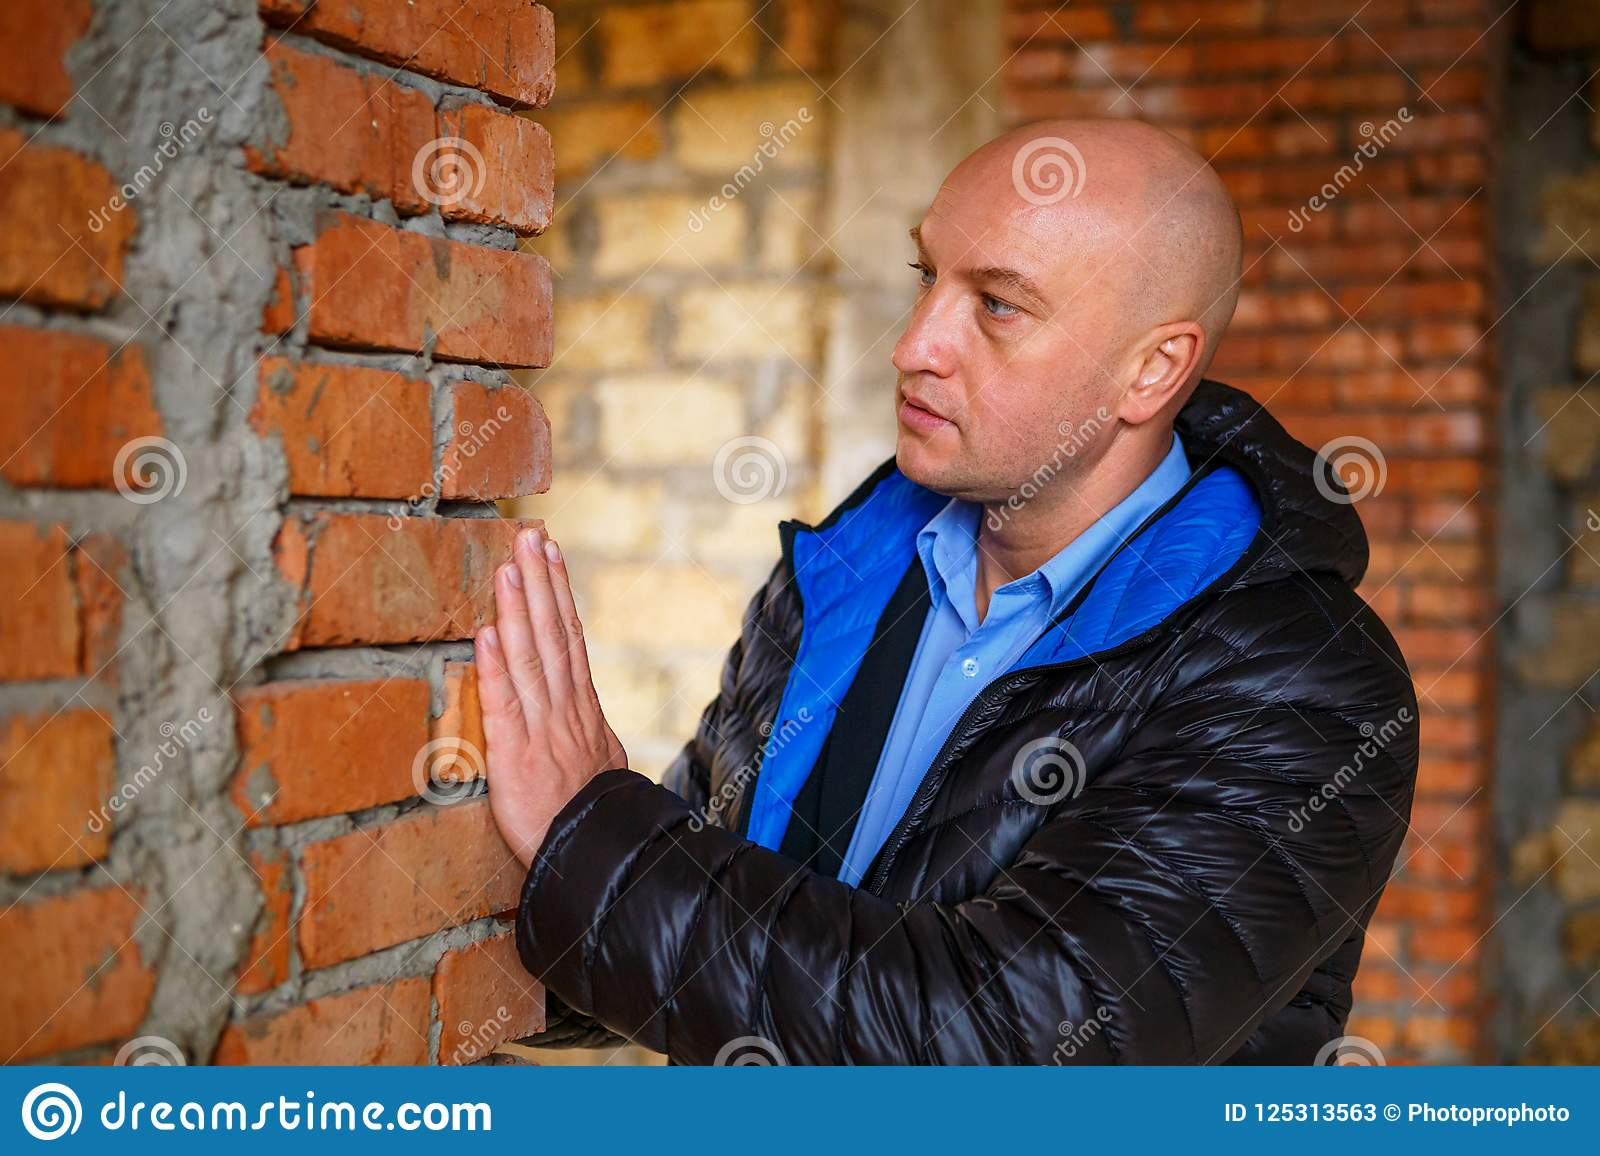 The main Builder checks the quality of brick laying